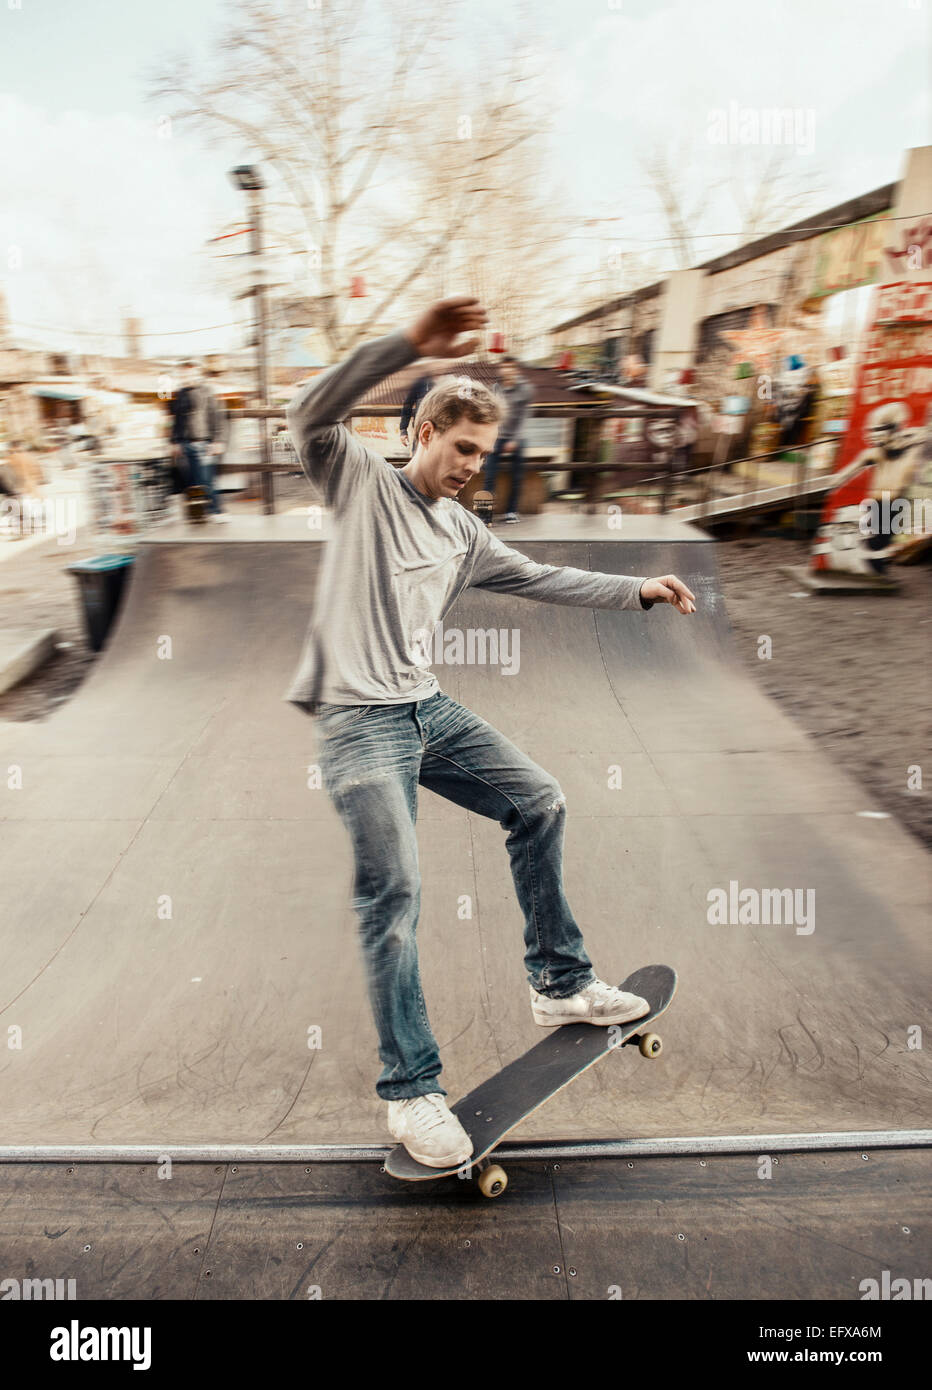 Skateboarding on mini ramp, 5-0 grind, Berlin, Germany - Stock Image